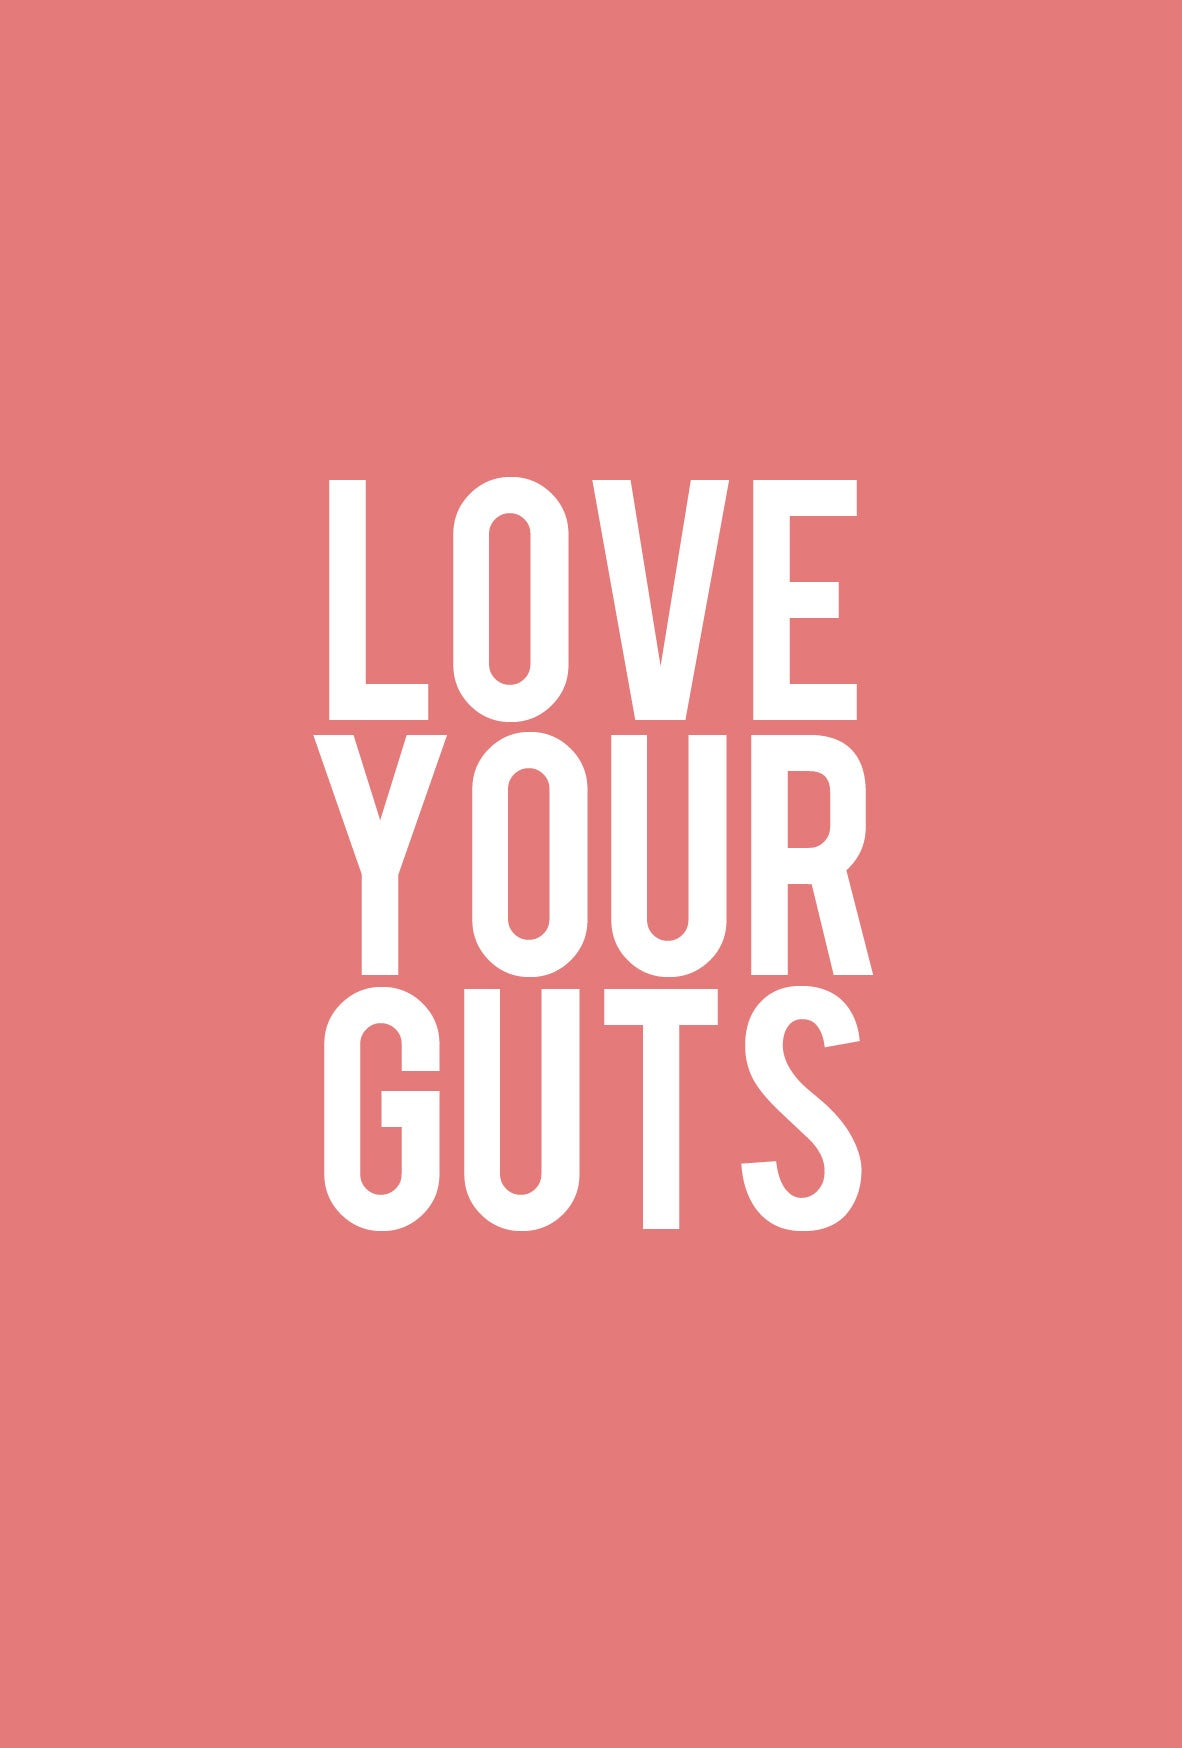 Image of love your guts